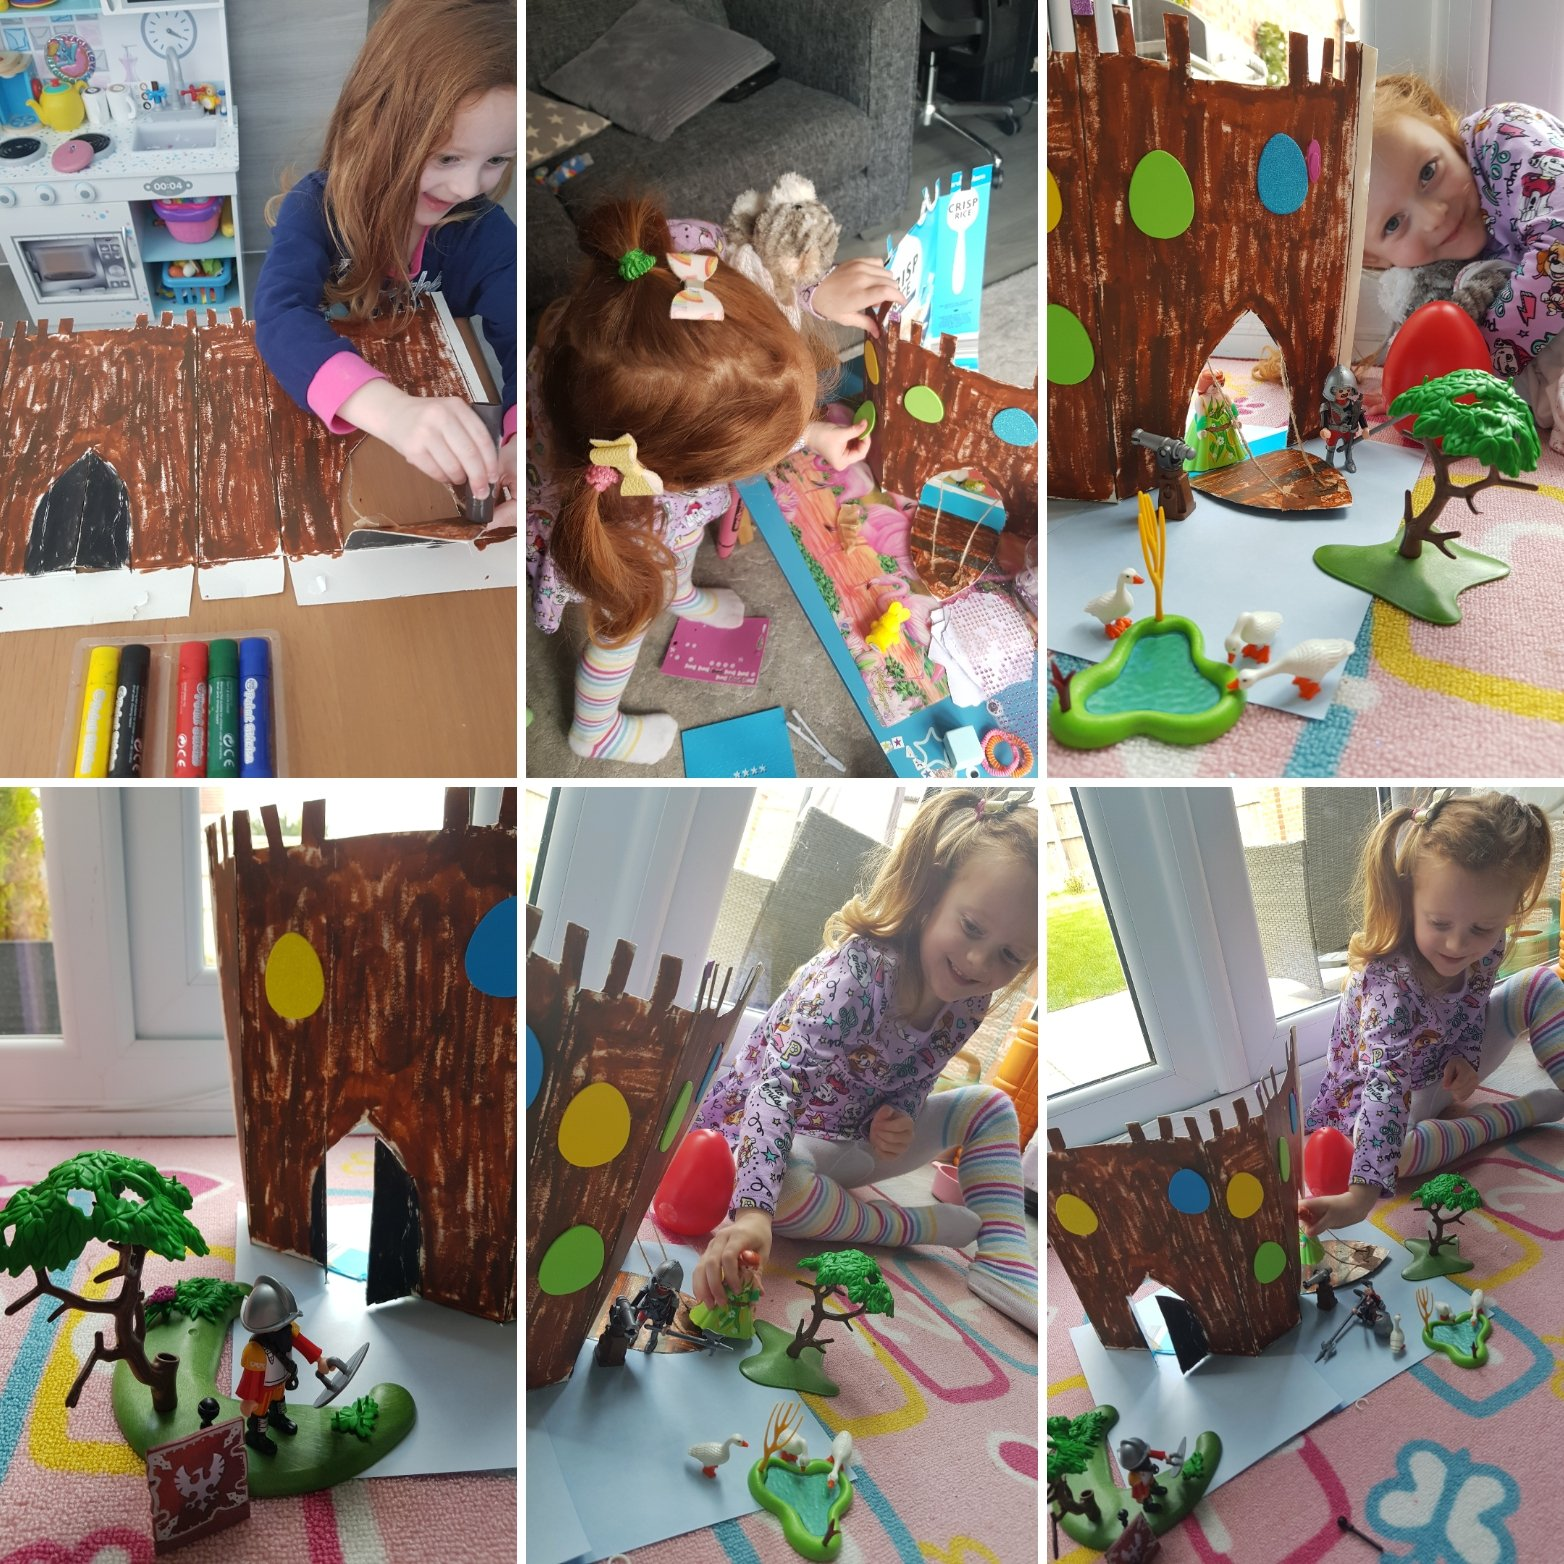 Her cereal box castle and Playmobil